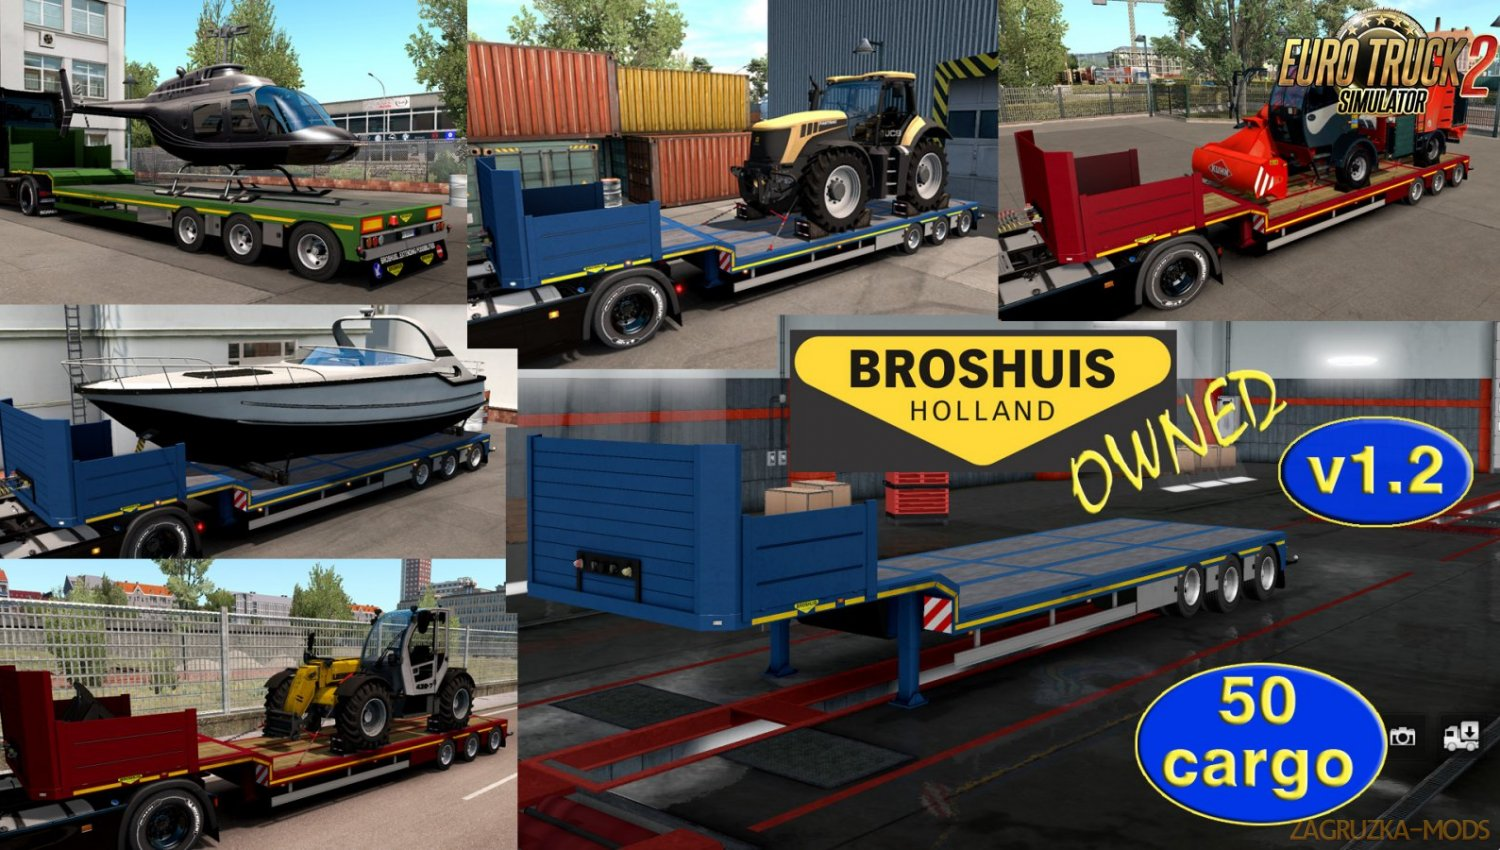 Ownable trailer Broshuis v1.2 by Jazzycat